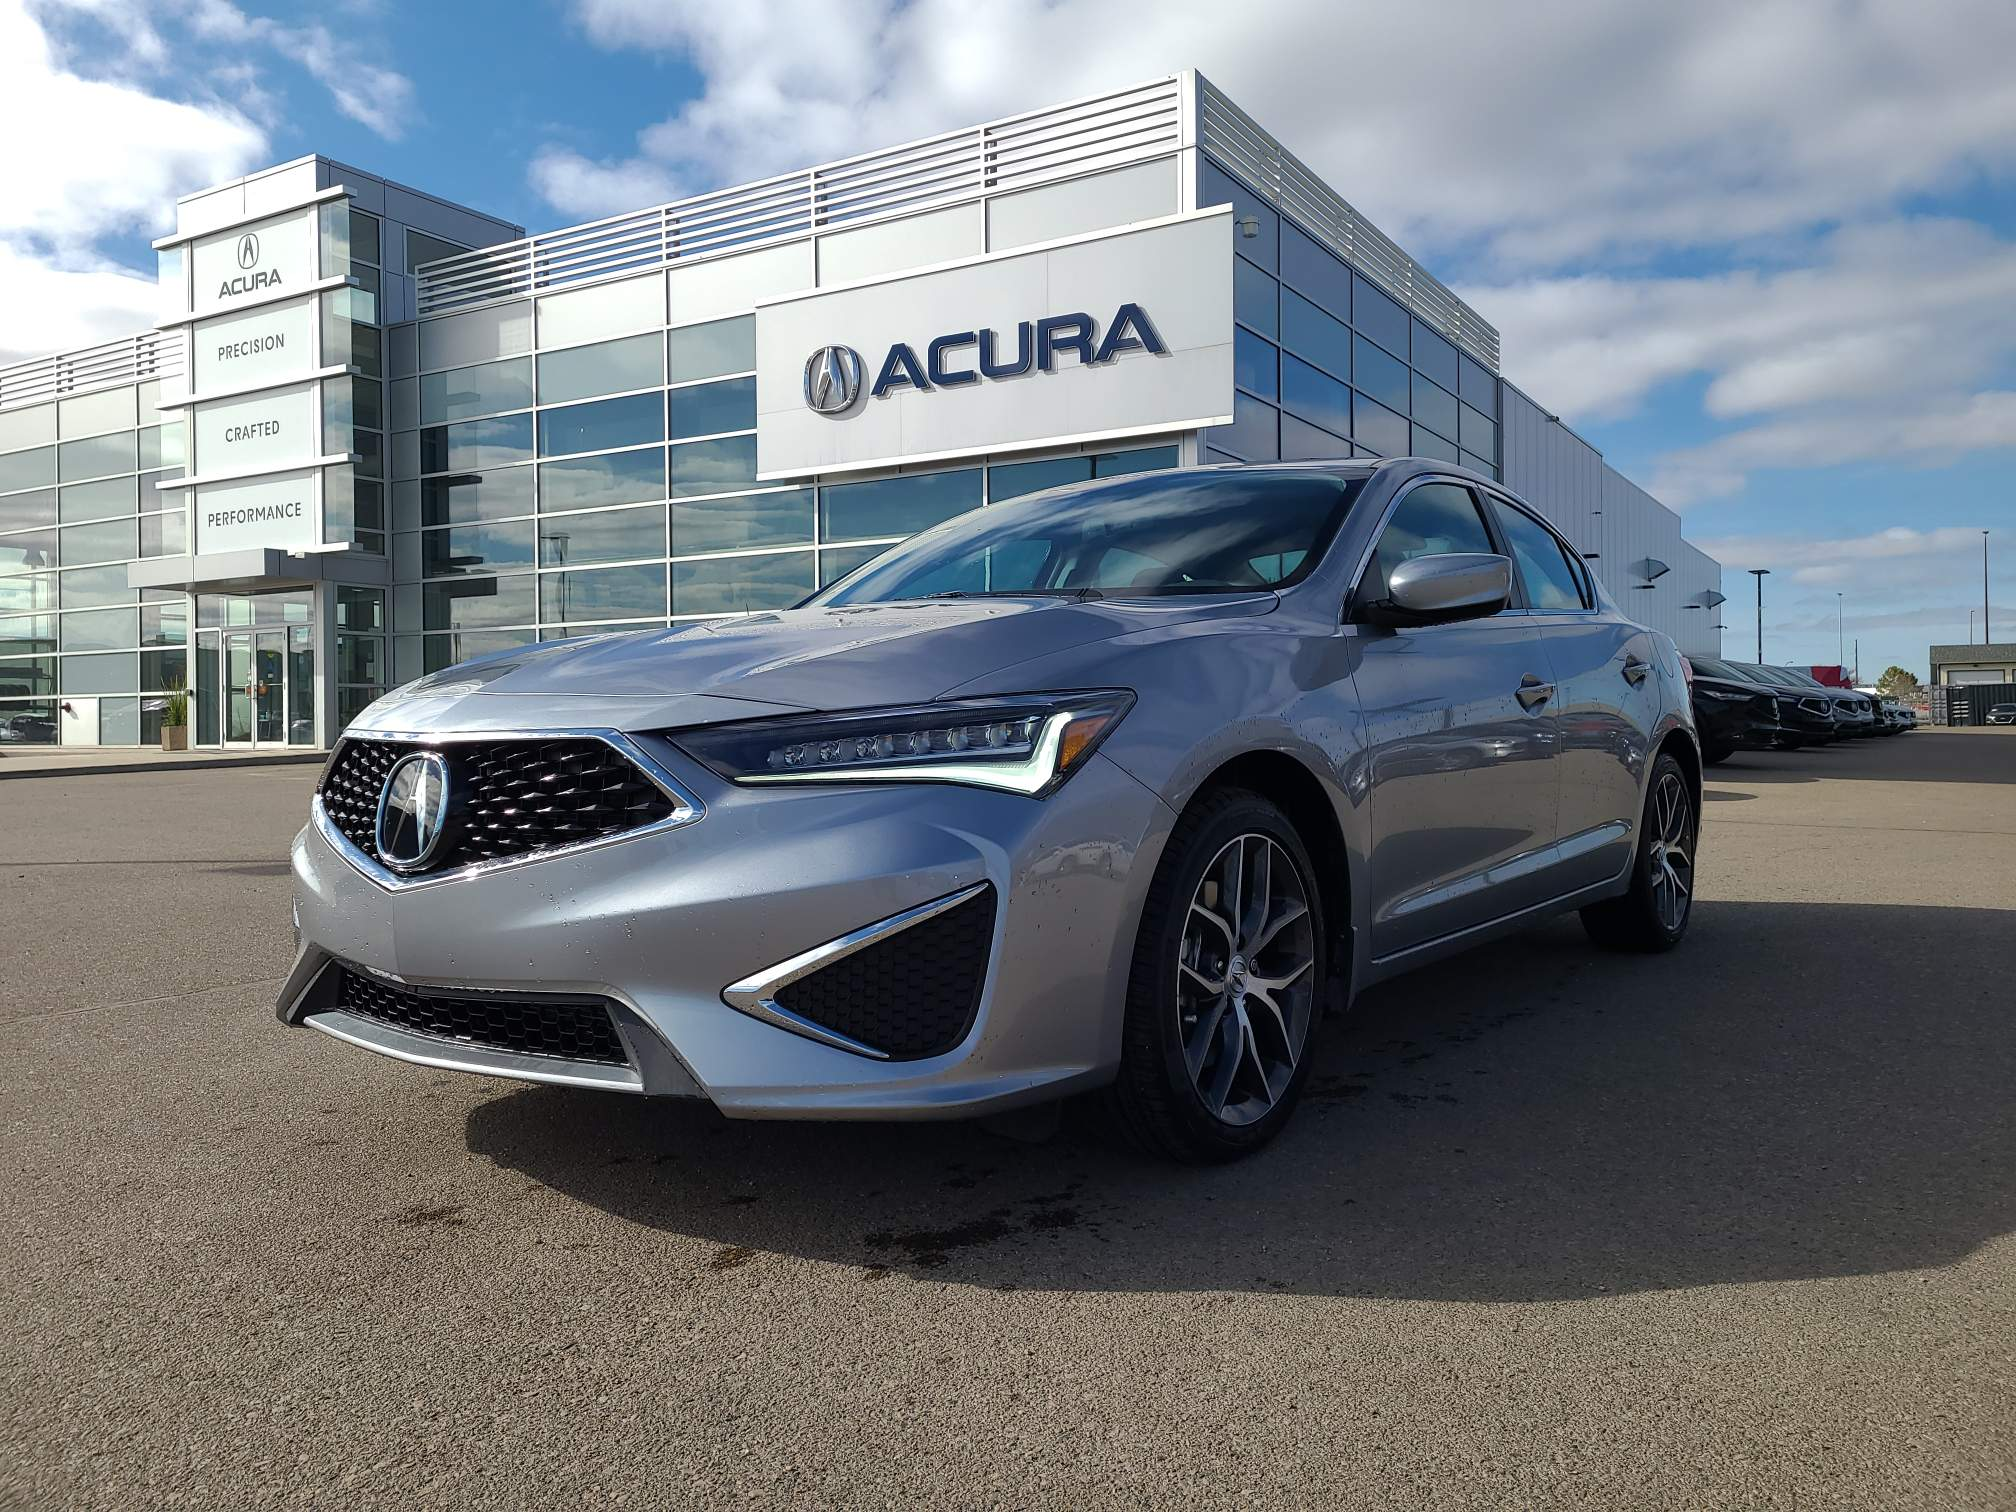 used 2020 Acura ILX car, priced at $29,632